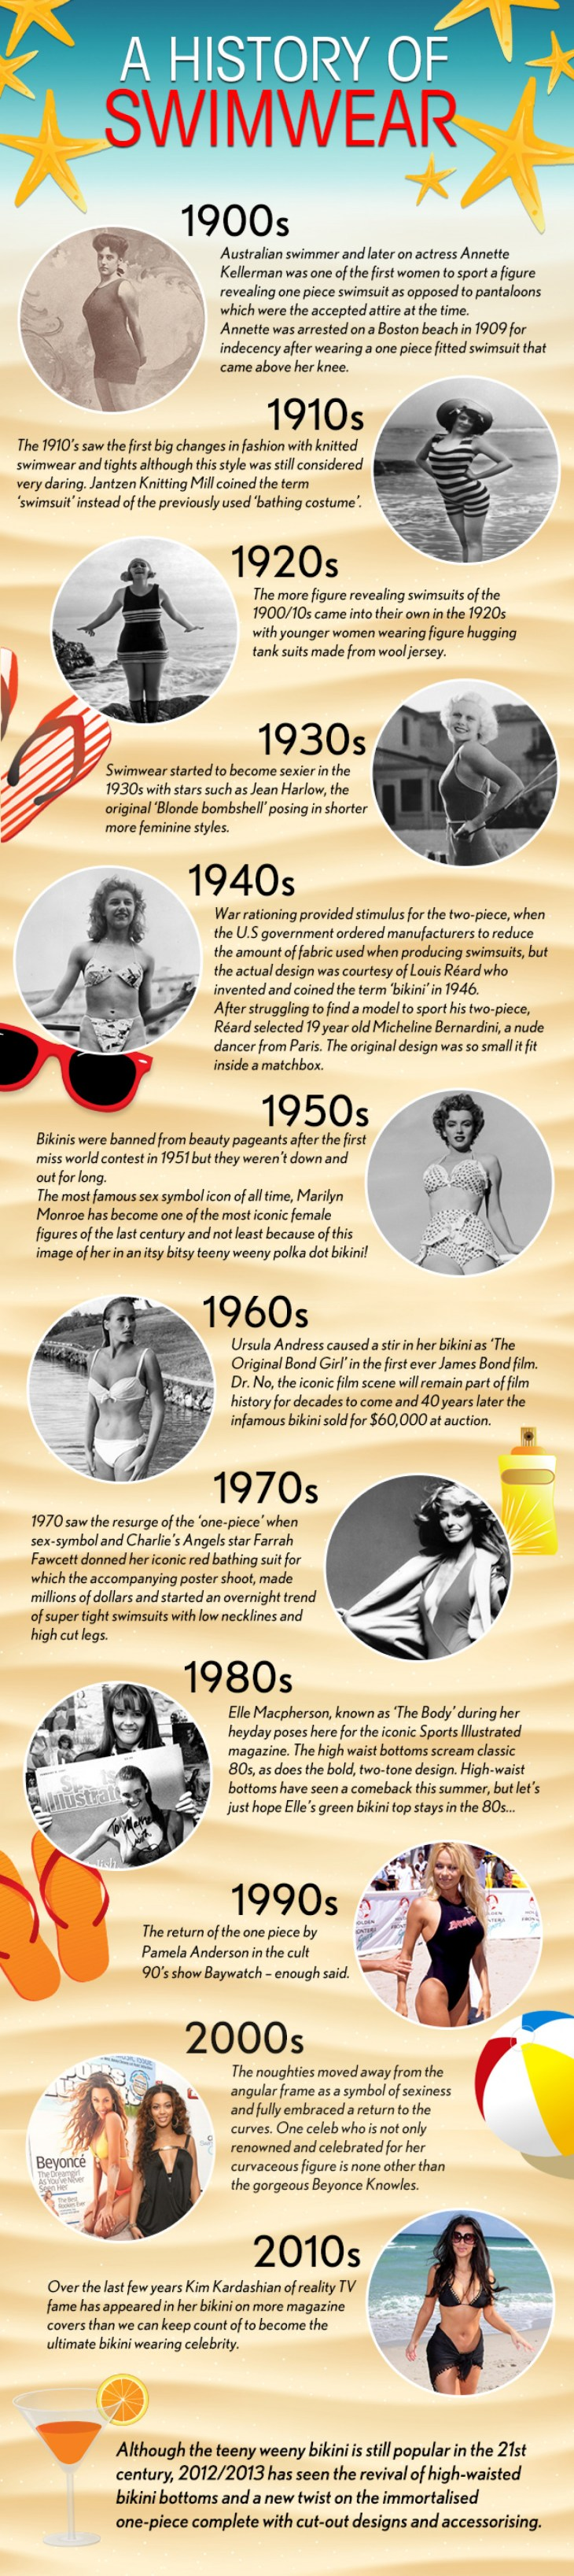 History of Swimwear infographic by http://www.swimwear365.co.uk/.